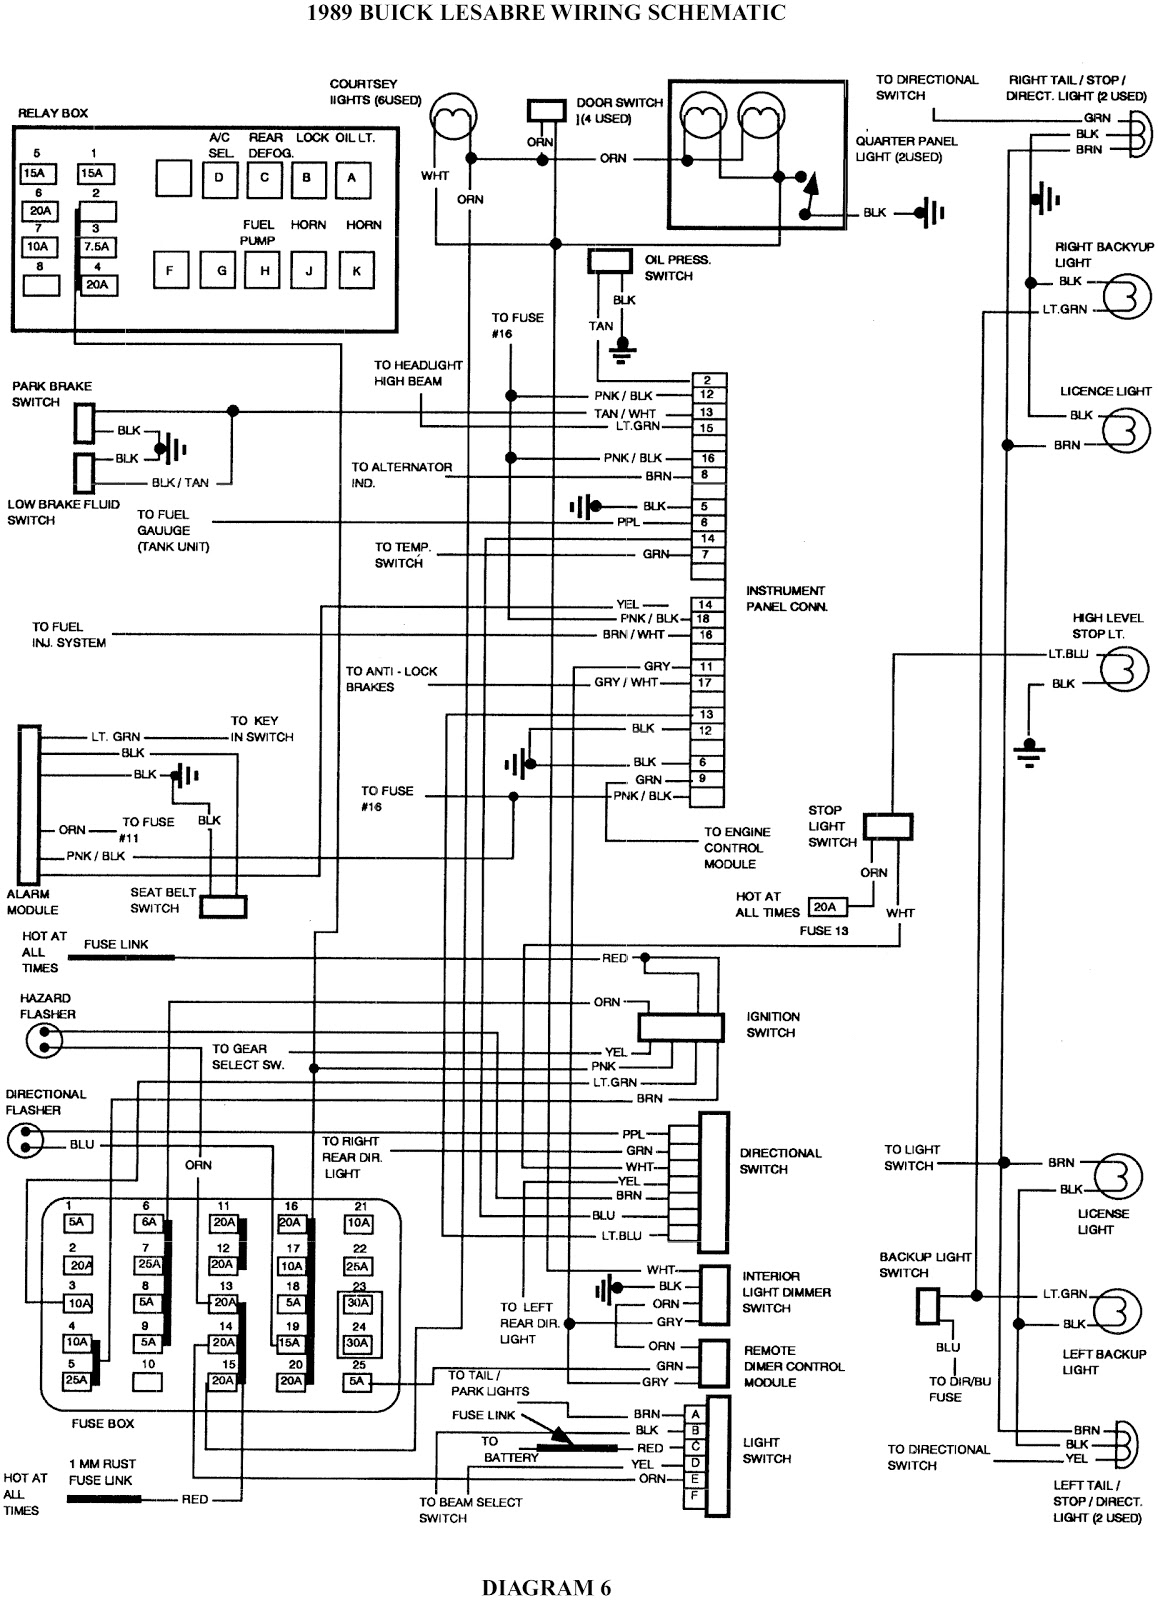 [SCHEMATICS_4PO]  1997 Buick Lesabre Wiring Diagram Diagram Base Website Wiring Diagram -  UNLABELEDHEARTDIAGRAM.RIFUGIDELLAROSA.IT | Buick Rendezvous Window Wiring Diagram |  | Diagram Base Website Full Edition - rifugidellarosa